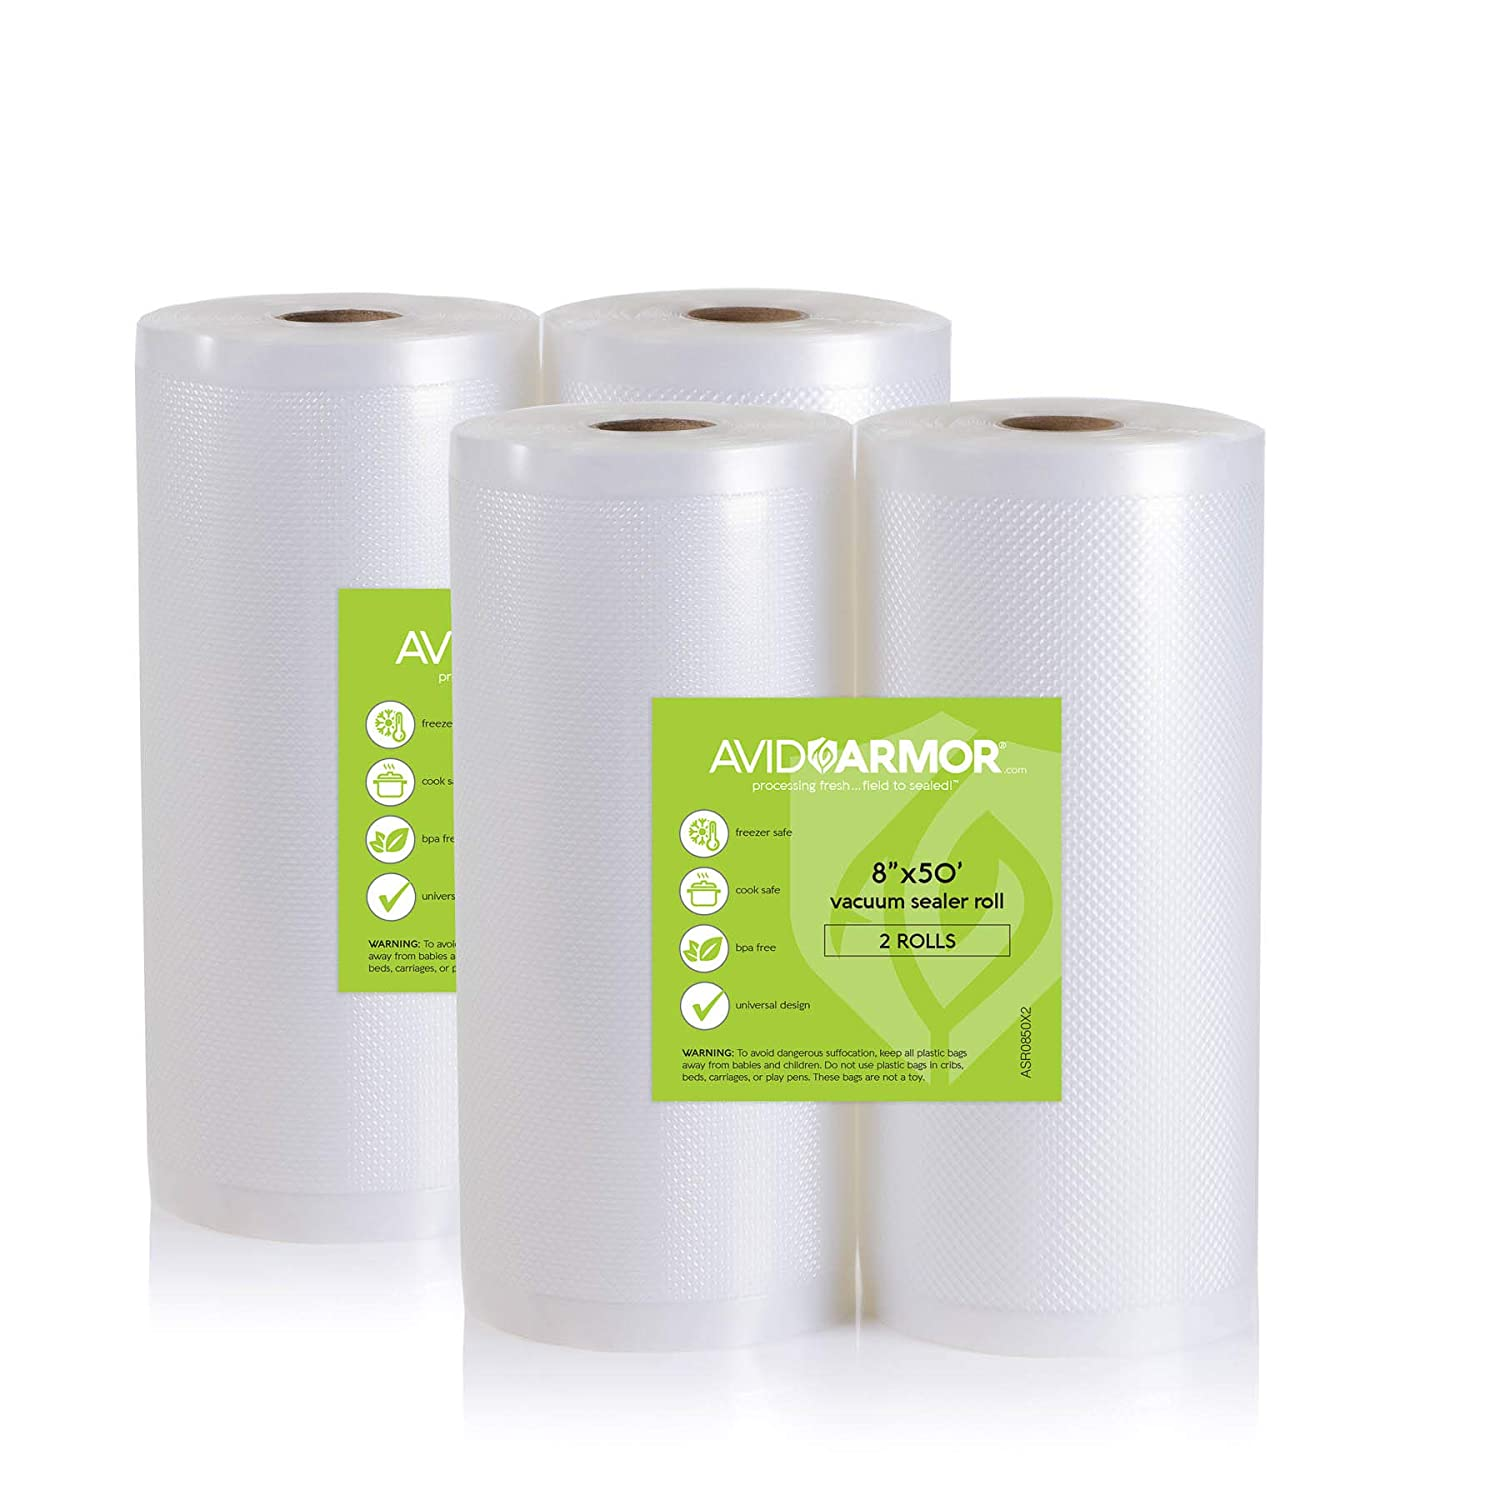 4 Large Vacuum Sealer Bag Rolls 8 Inch x 50 Feet for Food Saver, Seal a Meal Vac Sealers Heavy Duty Commercial BPA Free Sous Vide Safe Make Bags Cut to Length Roll 200 Total Feet Avid Armor